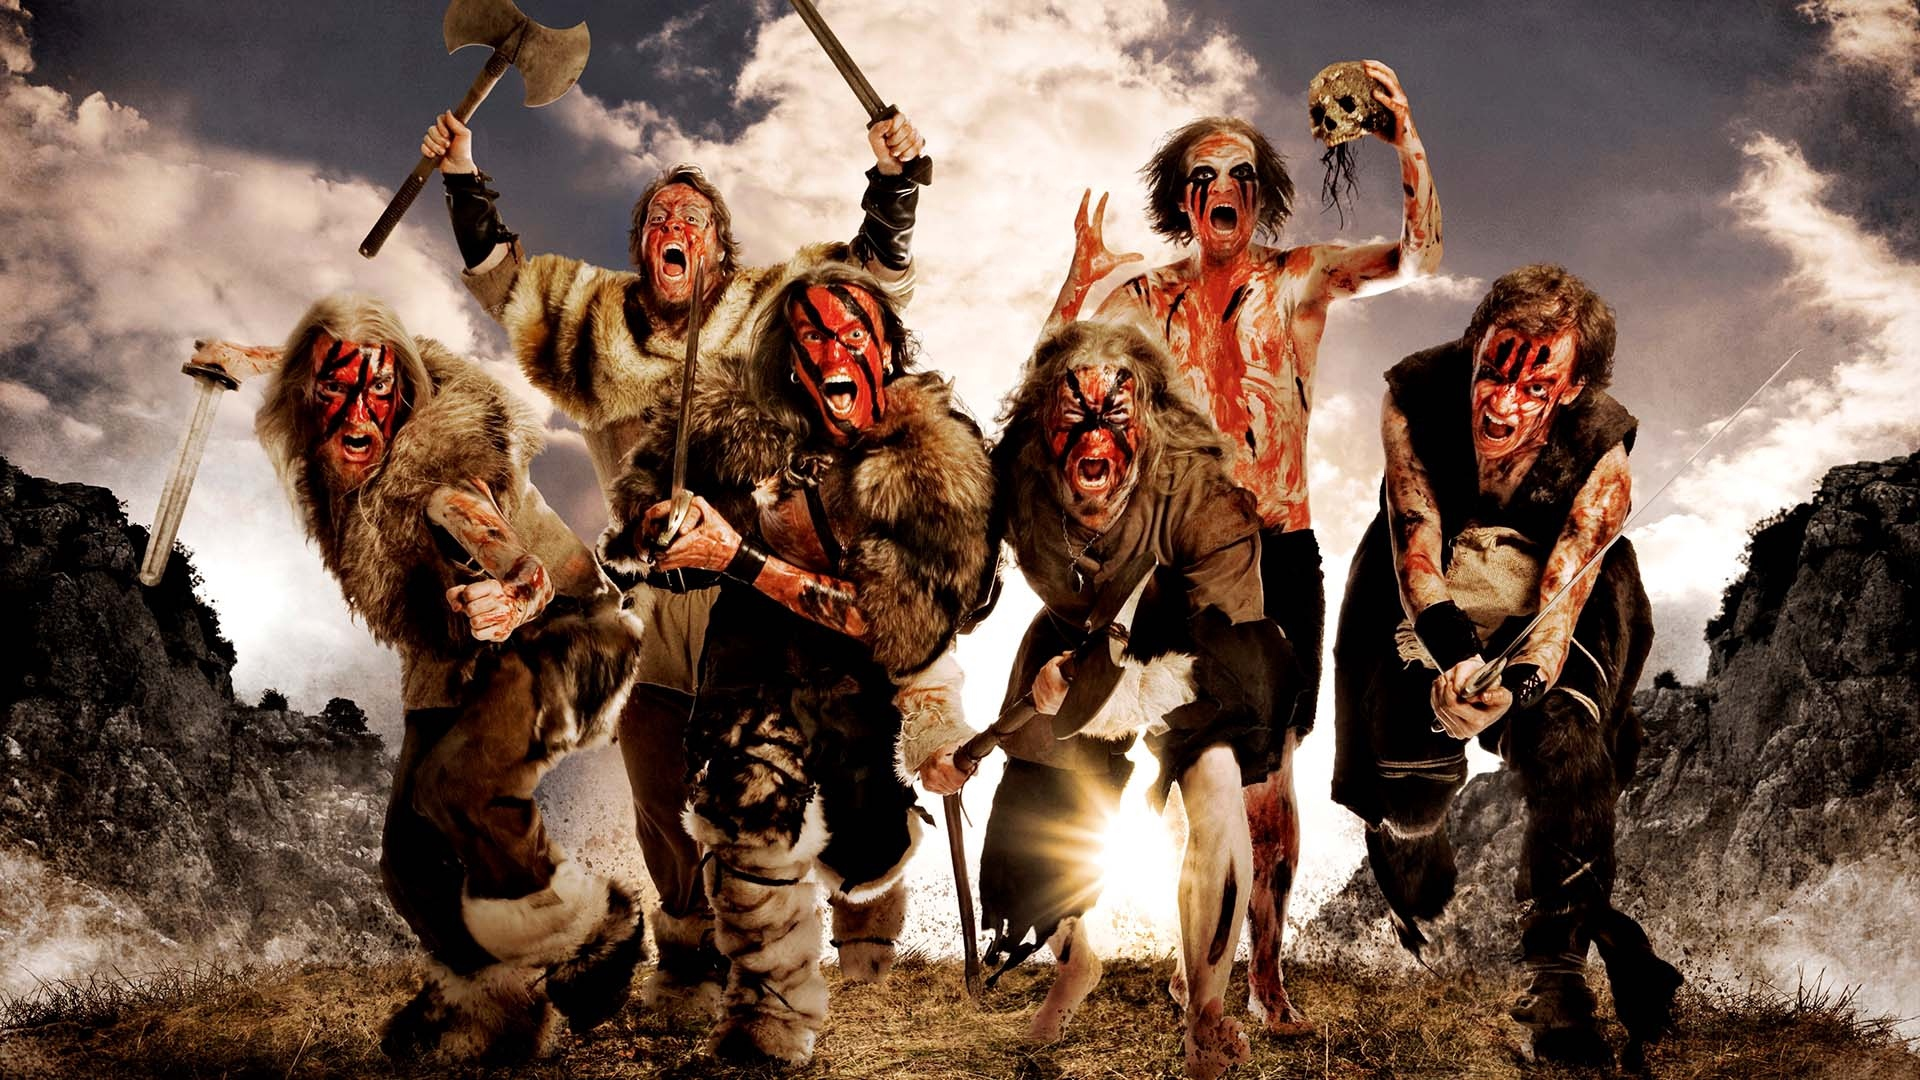 Turisas Arm Skull Image Scream   Stock Photos Images HD 1920x1080